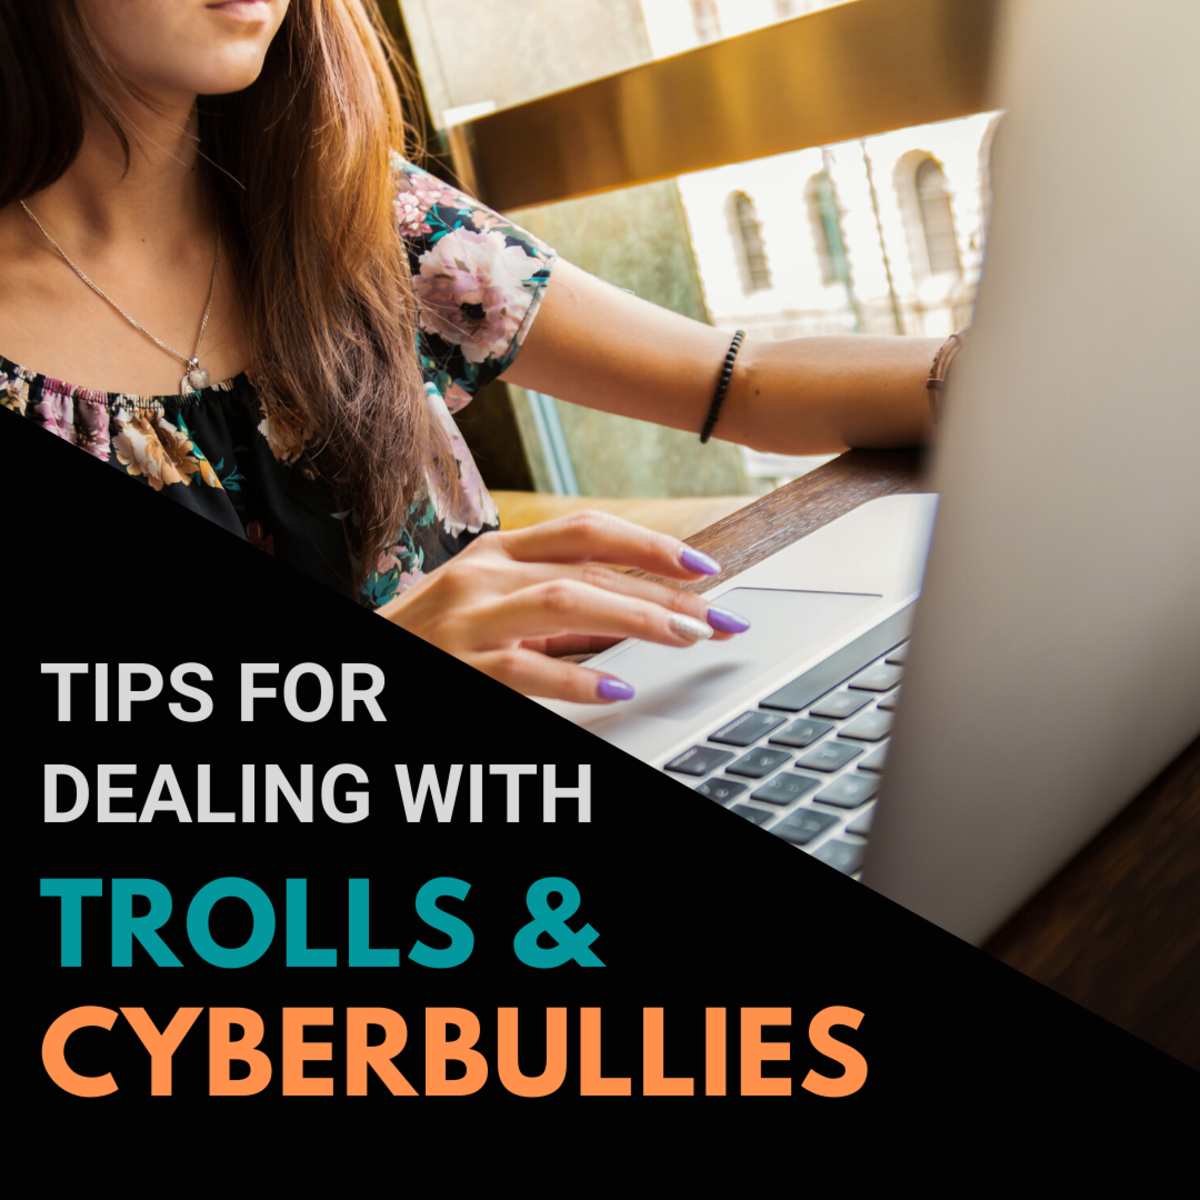 10 Tips for Handling Trolls and Cyberbullies